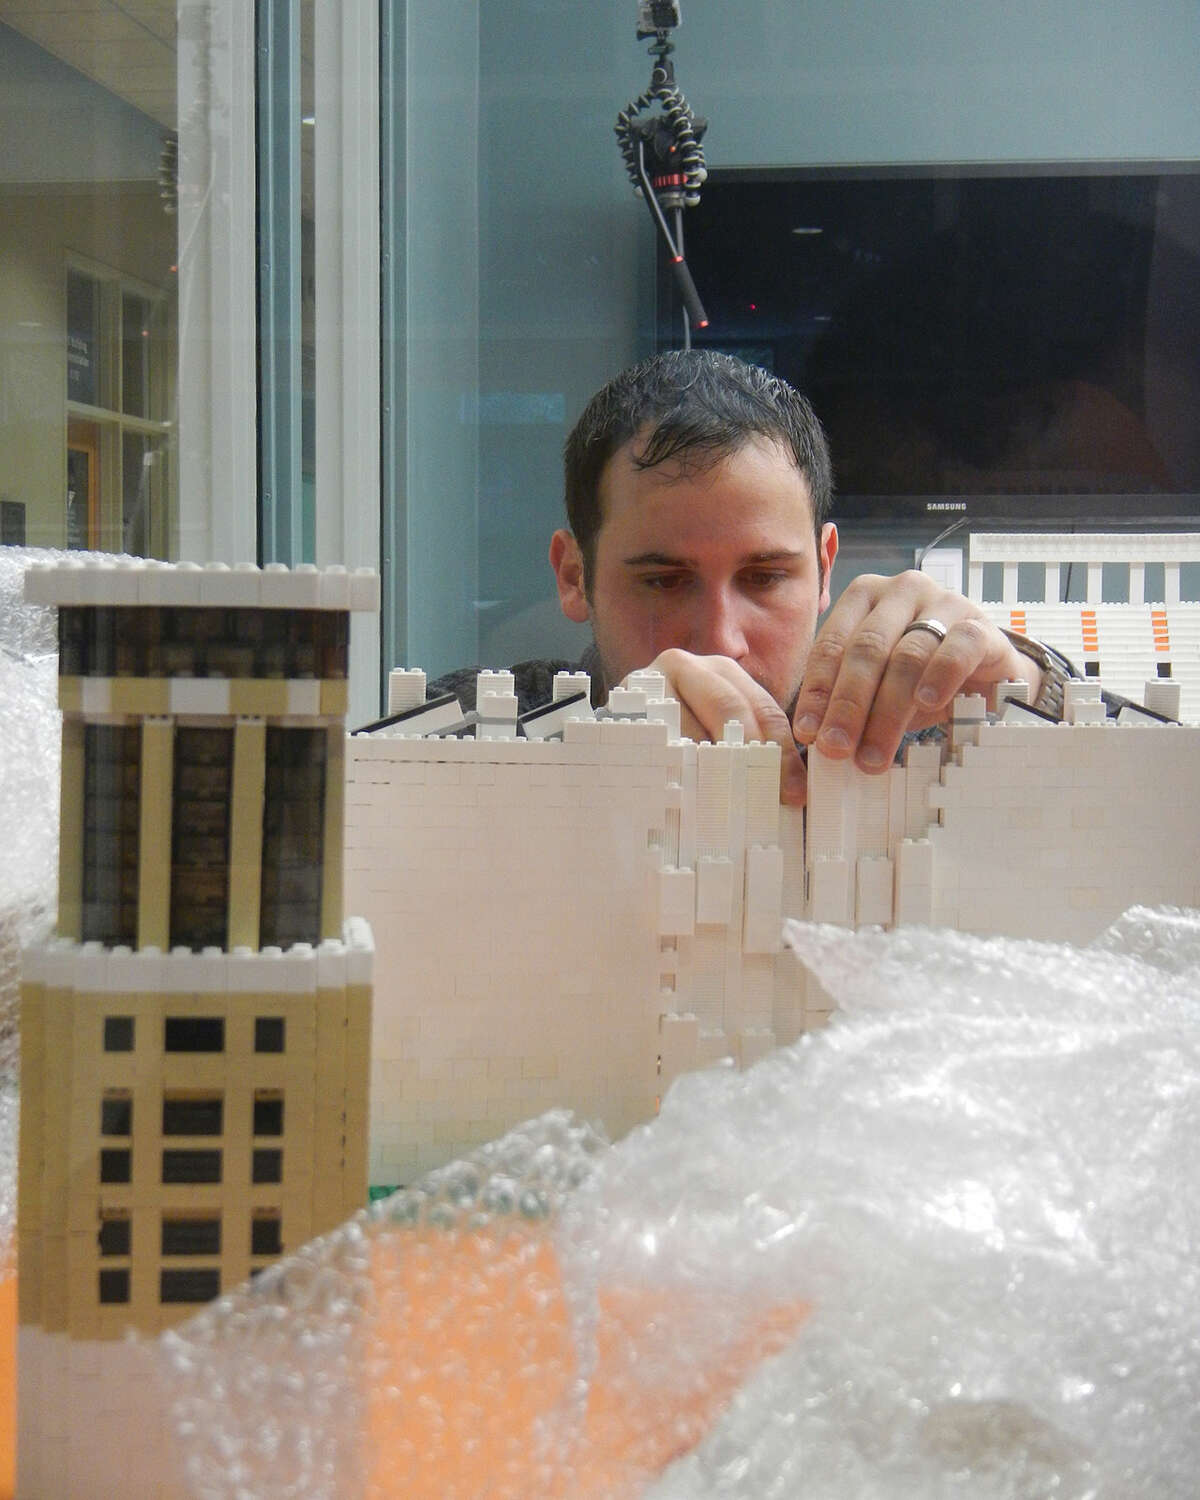 University of Texas alumni Drew Kinkel and Richard Meth rebuilt he Darrell K Royal Stadium in five hours Saturday with 60,000 LEGOs. Kinkel first built the model in his home in Chicago, but deconstructed it, shipped it and rebuilt it at the university's student center at the university's request.